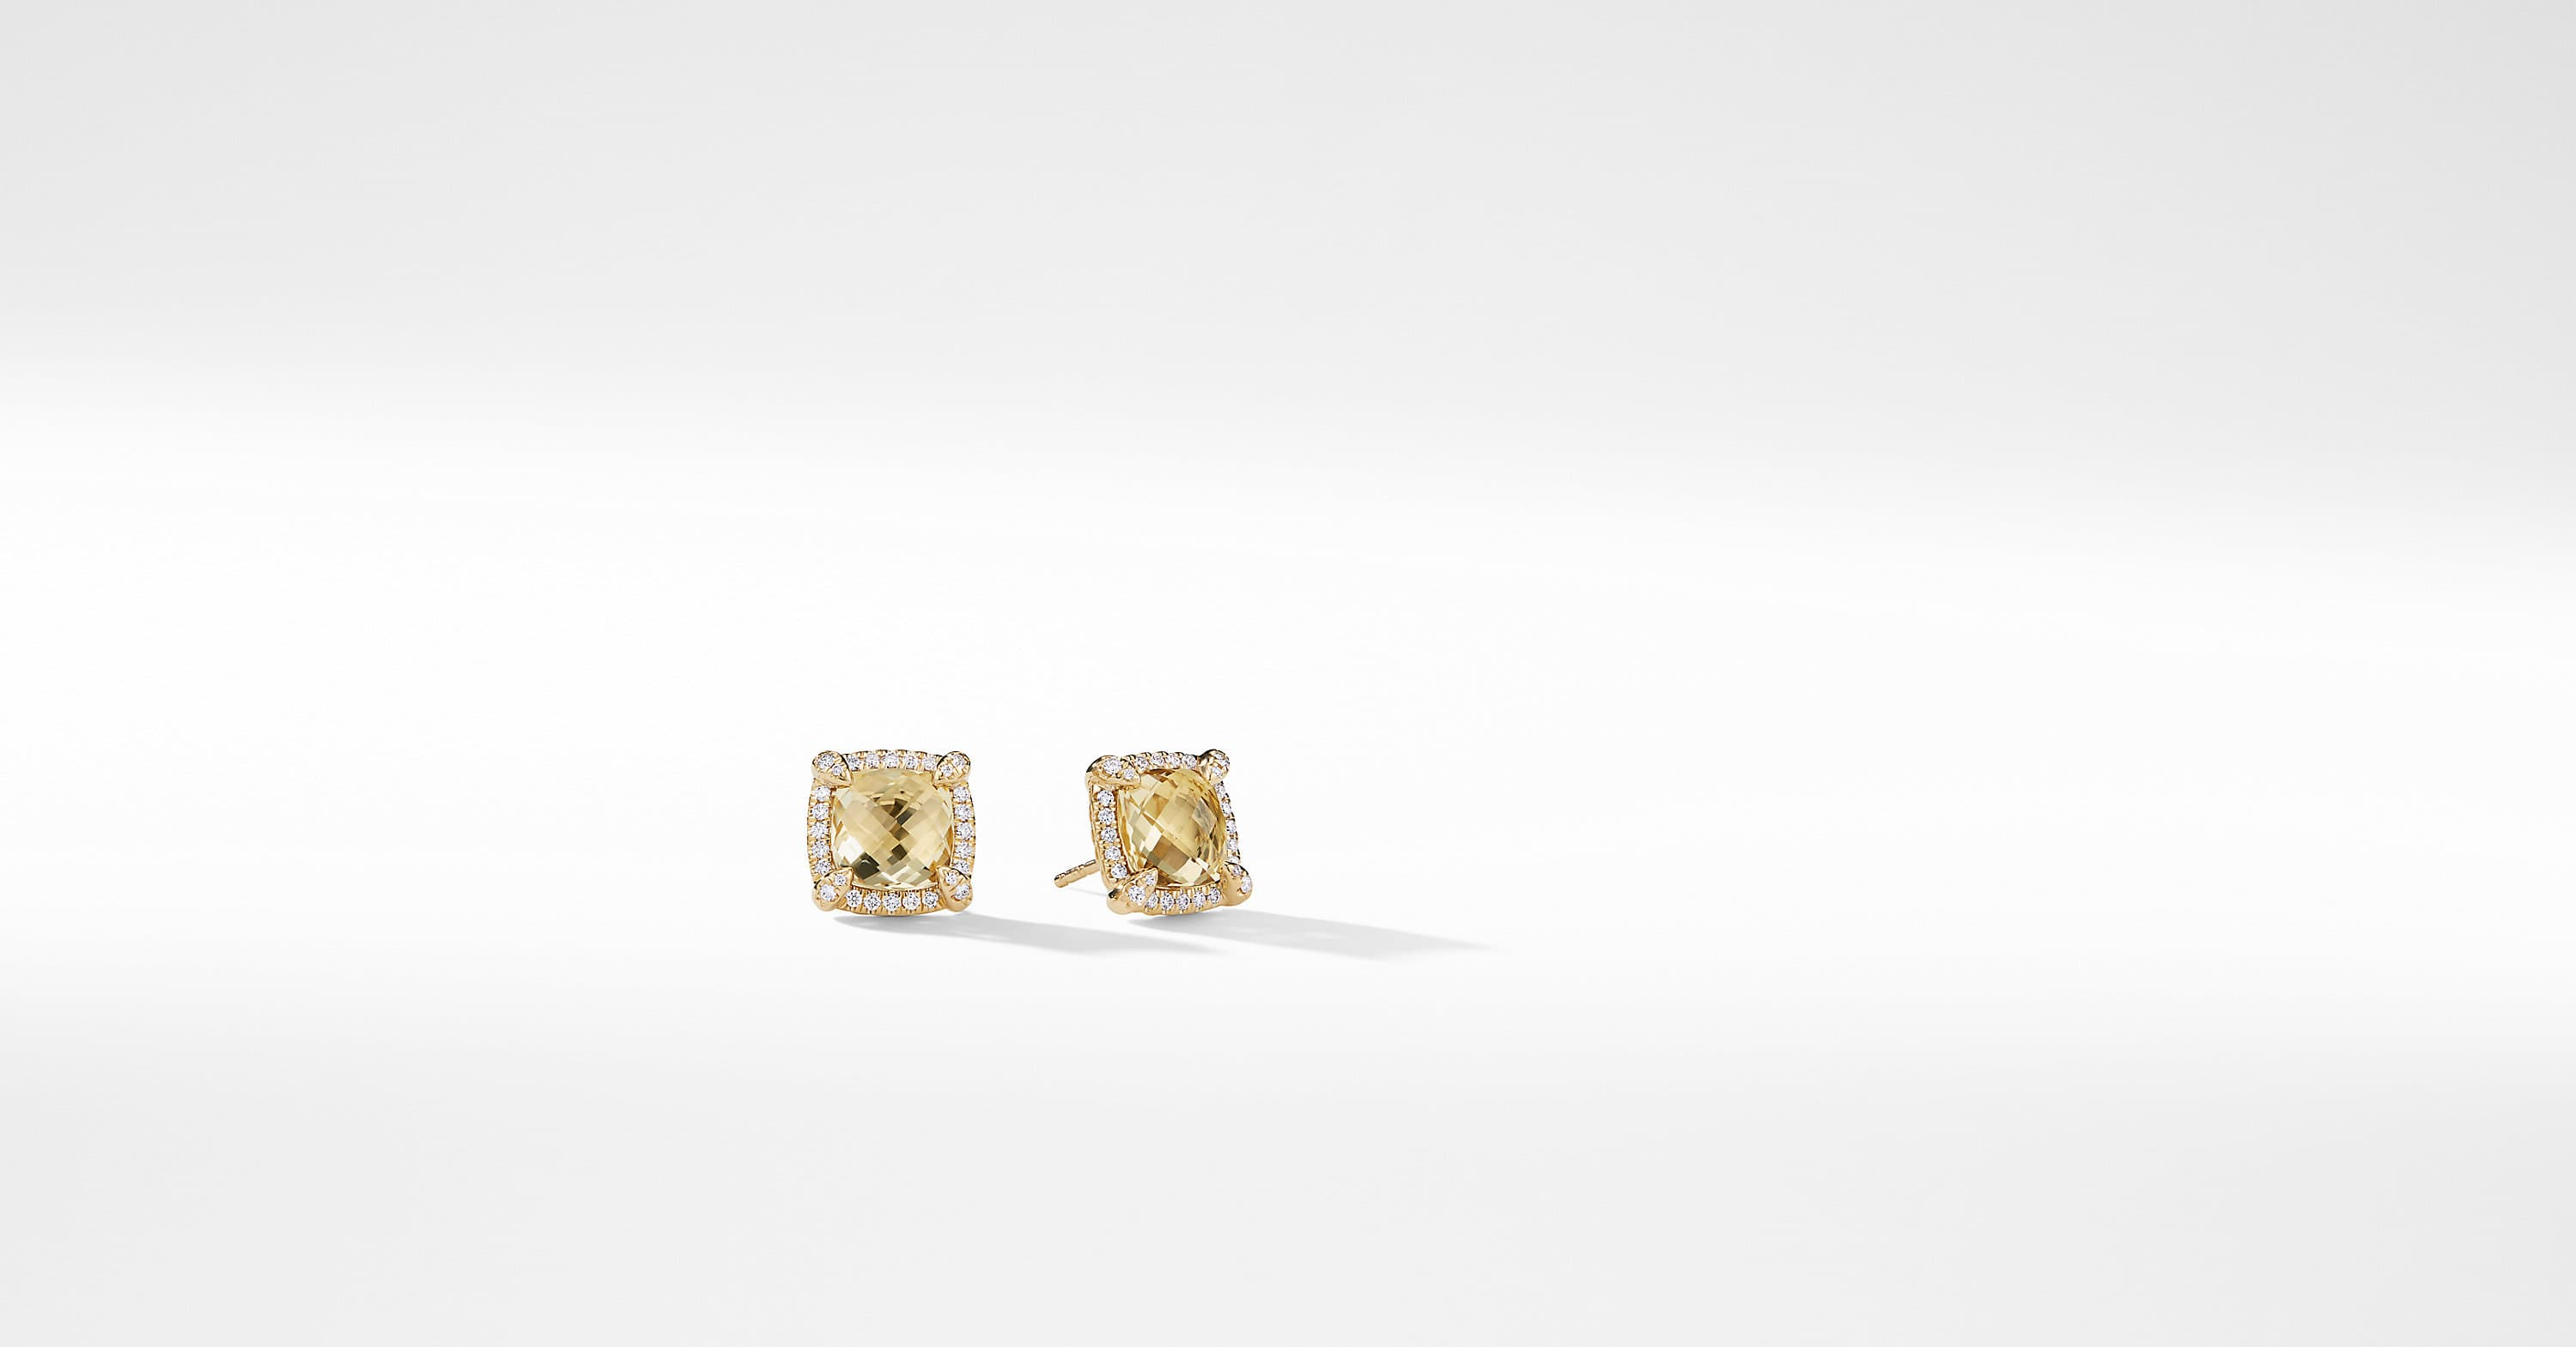 Chatelaine Pave Bezel Stud Earring with Diamonds in 18K Gold, 8mm